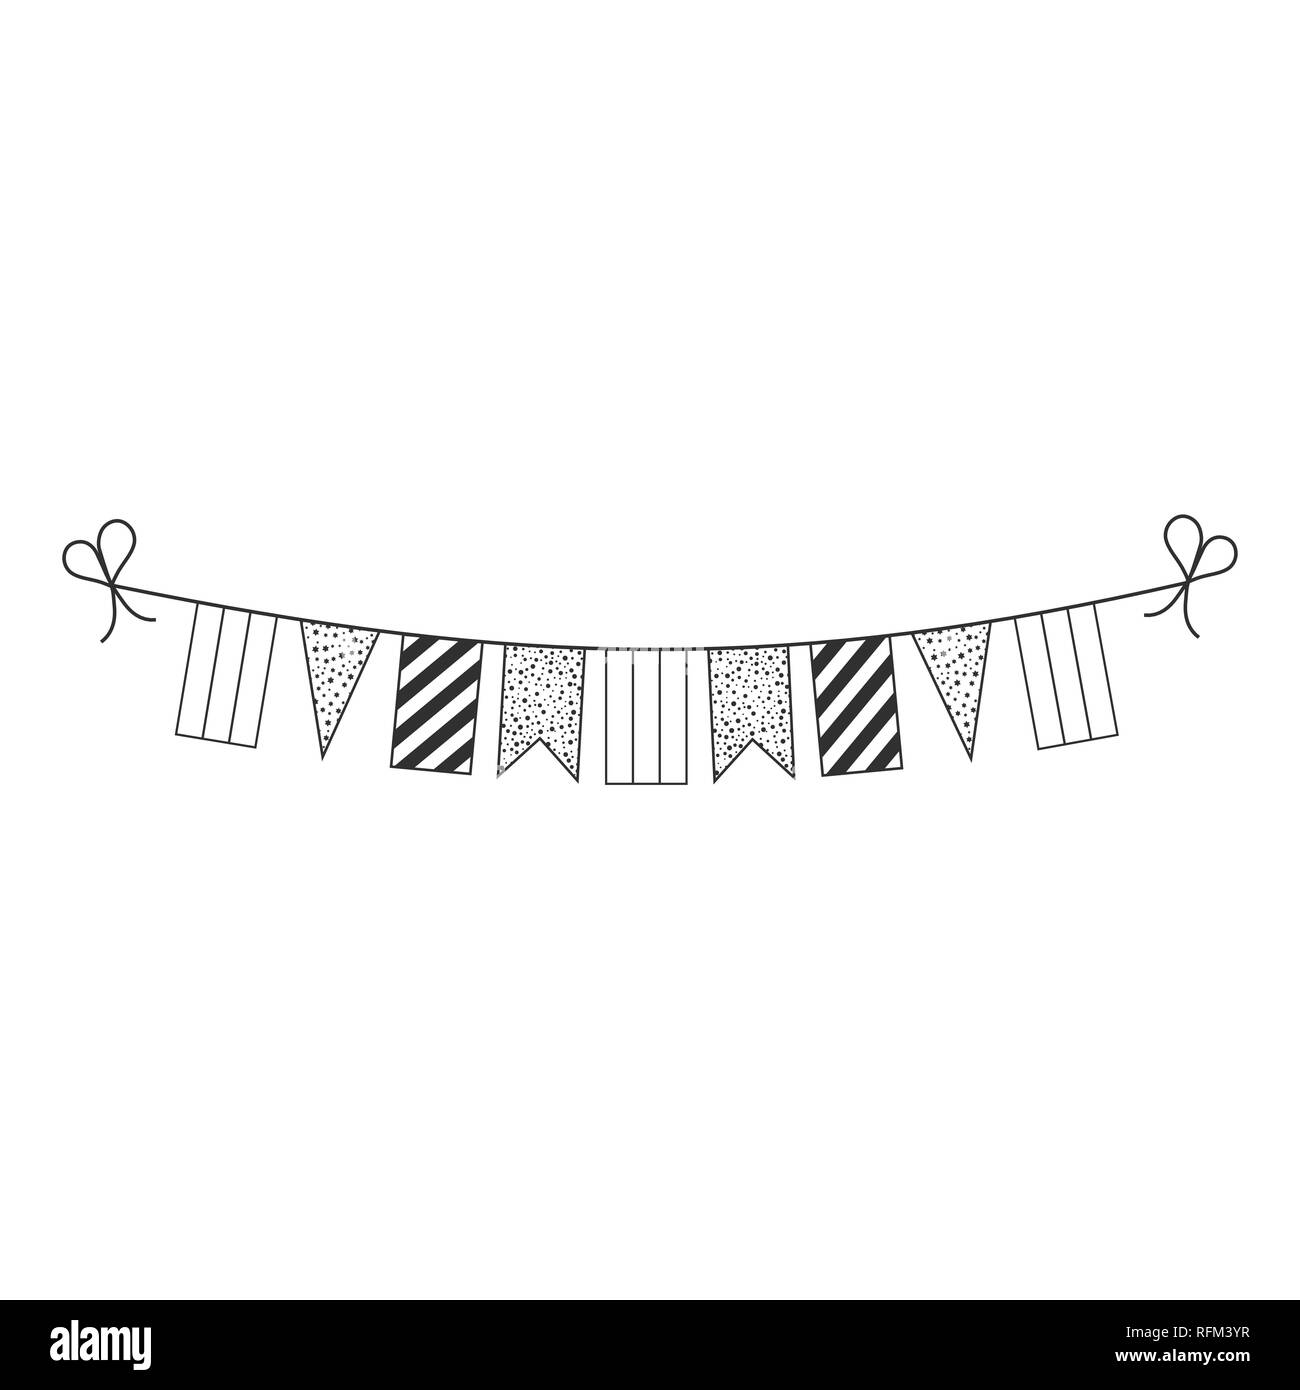 Decorations bunting flags for horizontal triband country national day holiday in black outline flat design. Independence day or National day holiday c - Stock Image